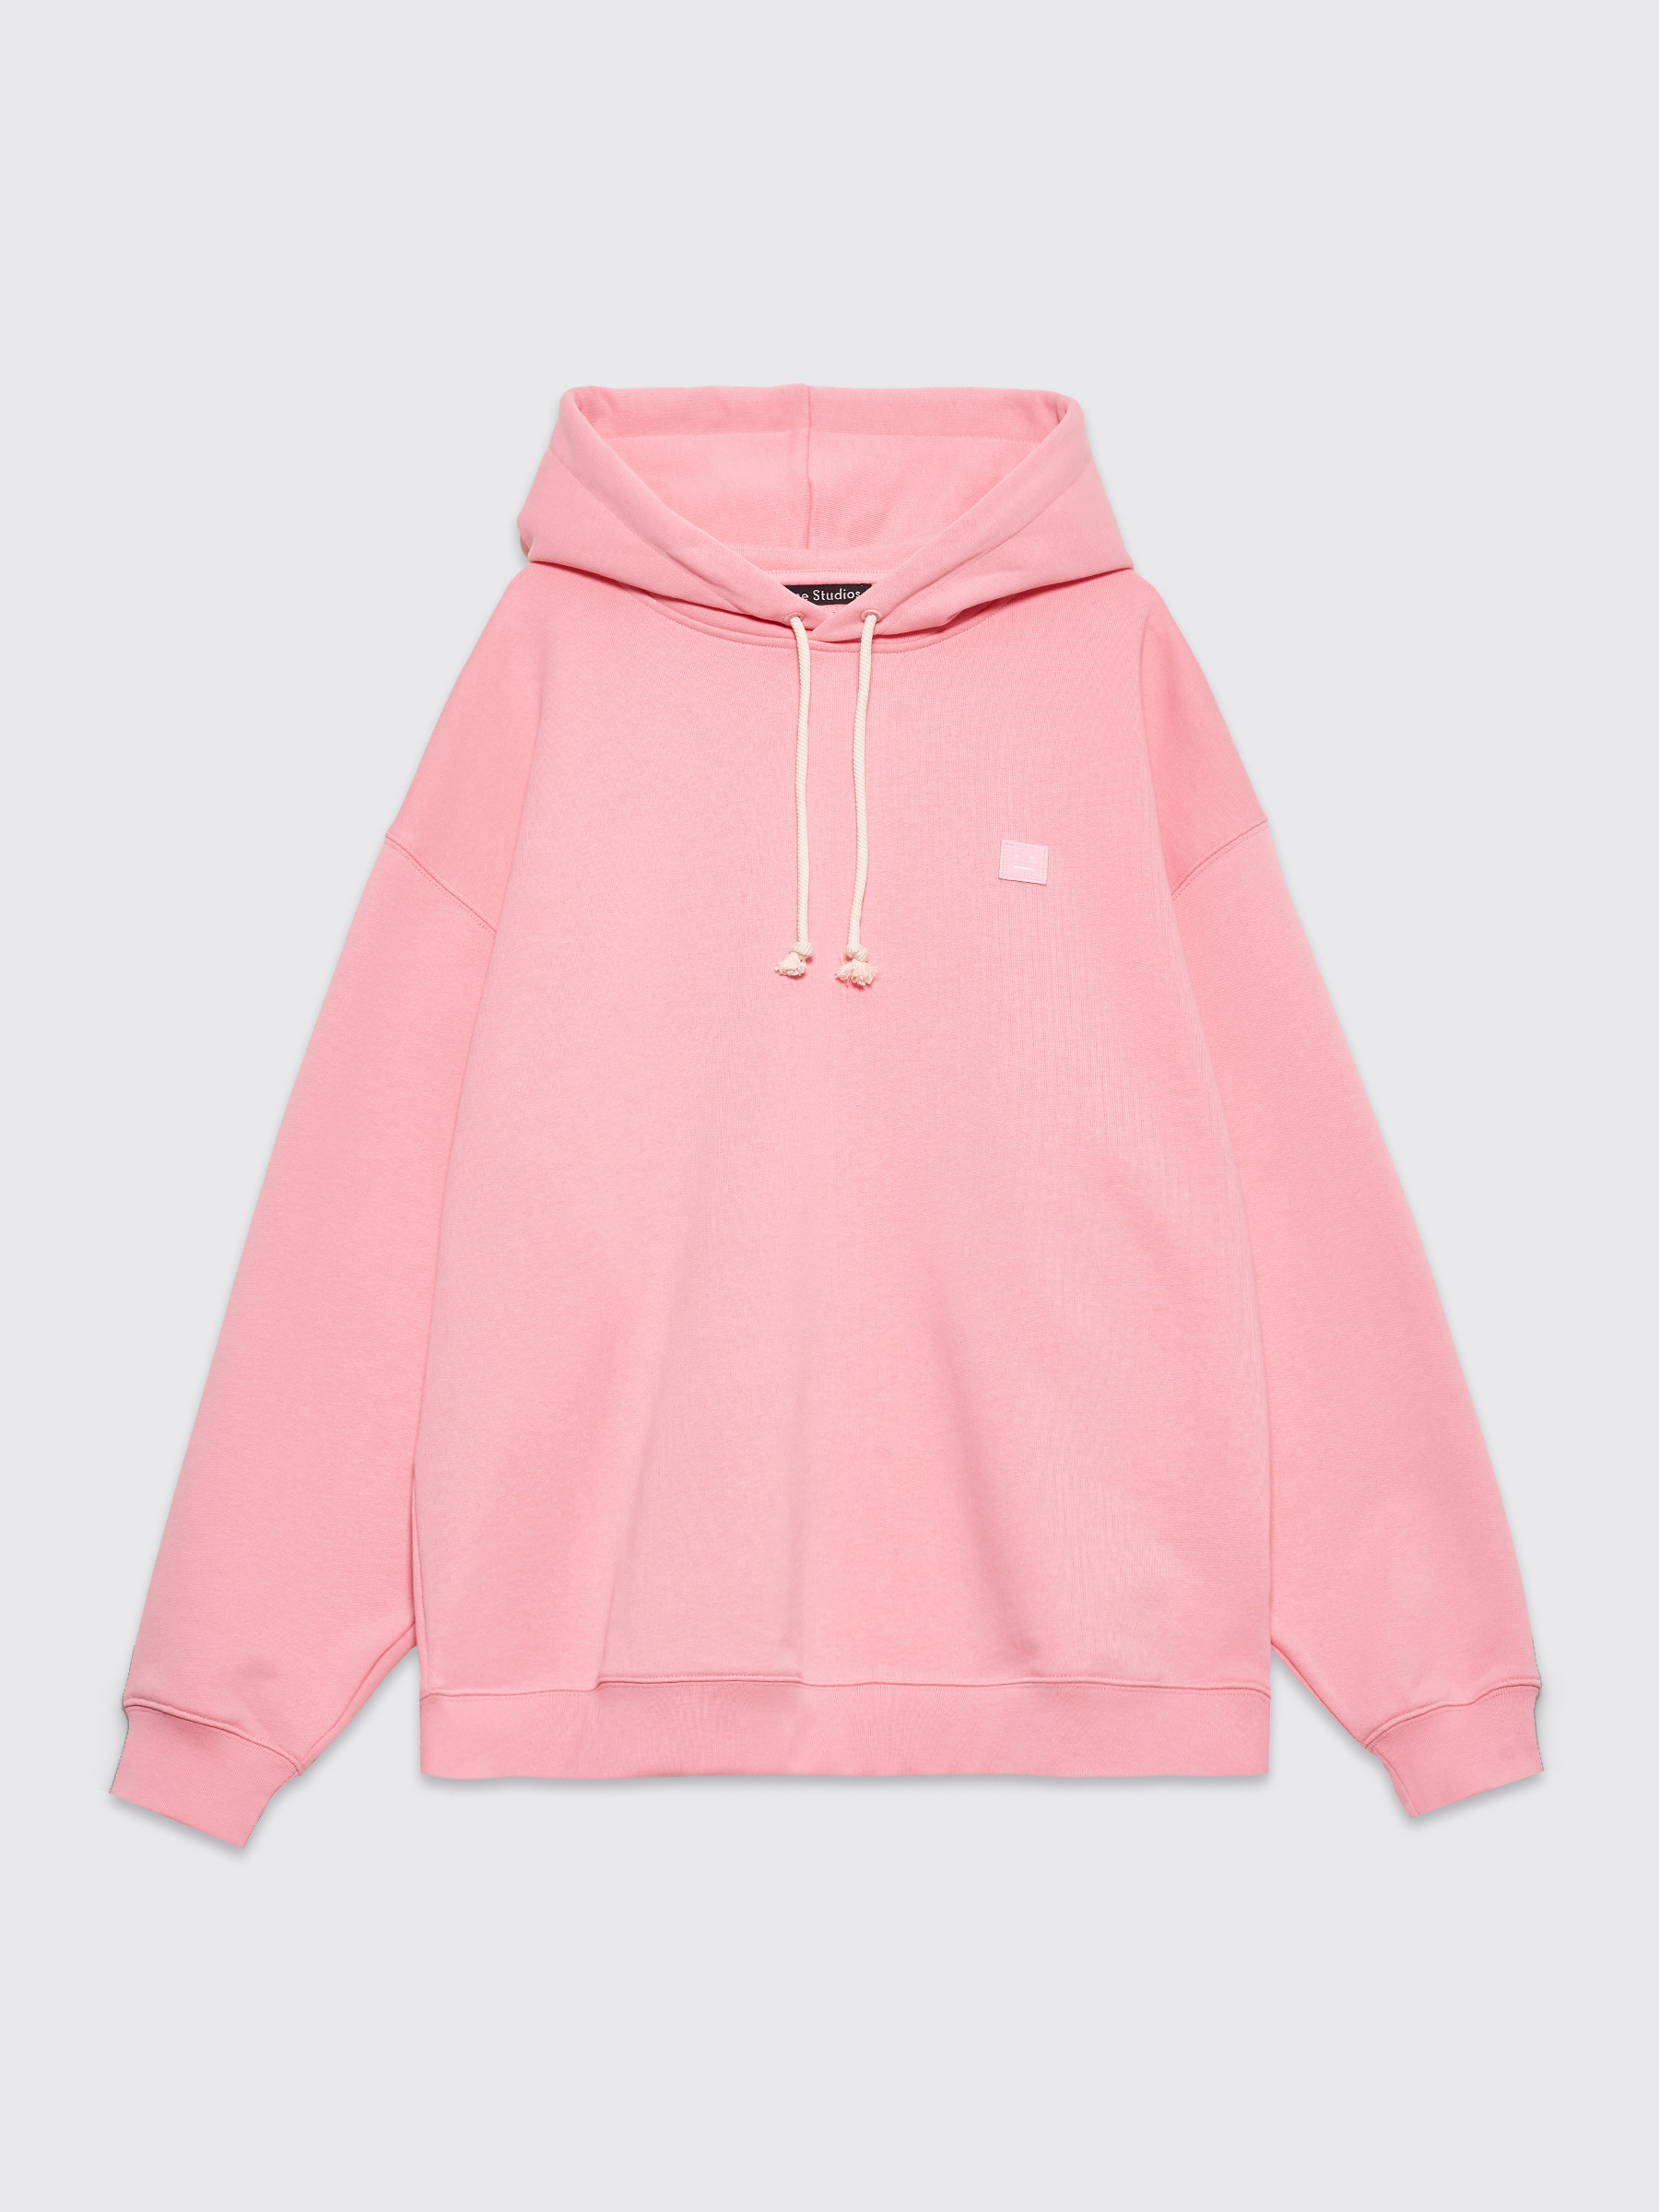 the latest many fashionable hot sale Acne Studios Farrin Face Hooded Sweatshirt Blush Pink